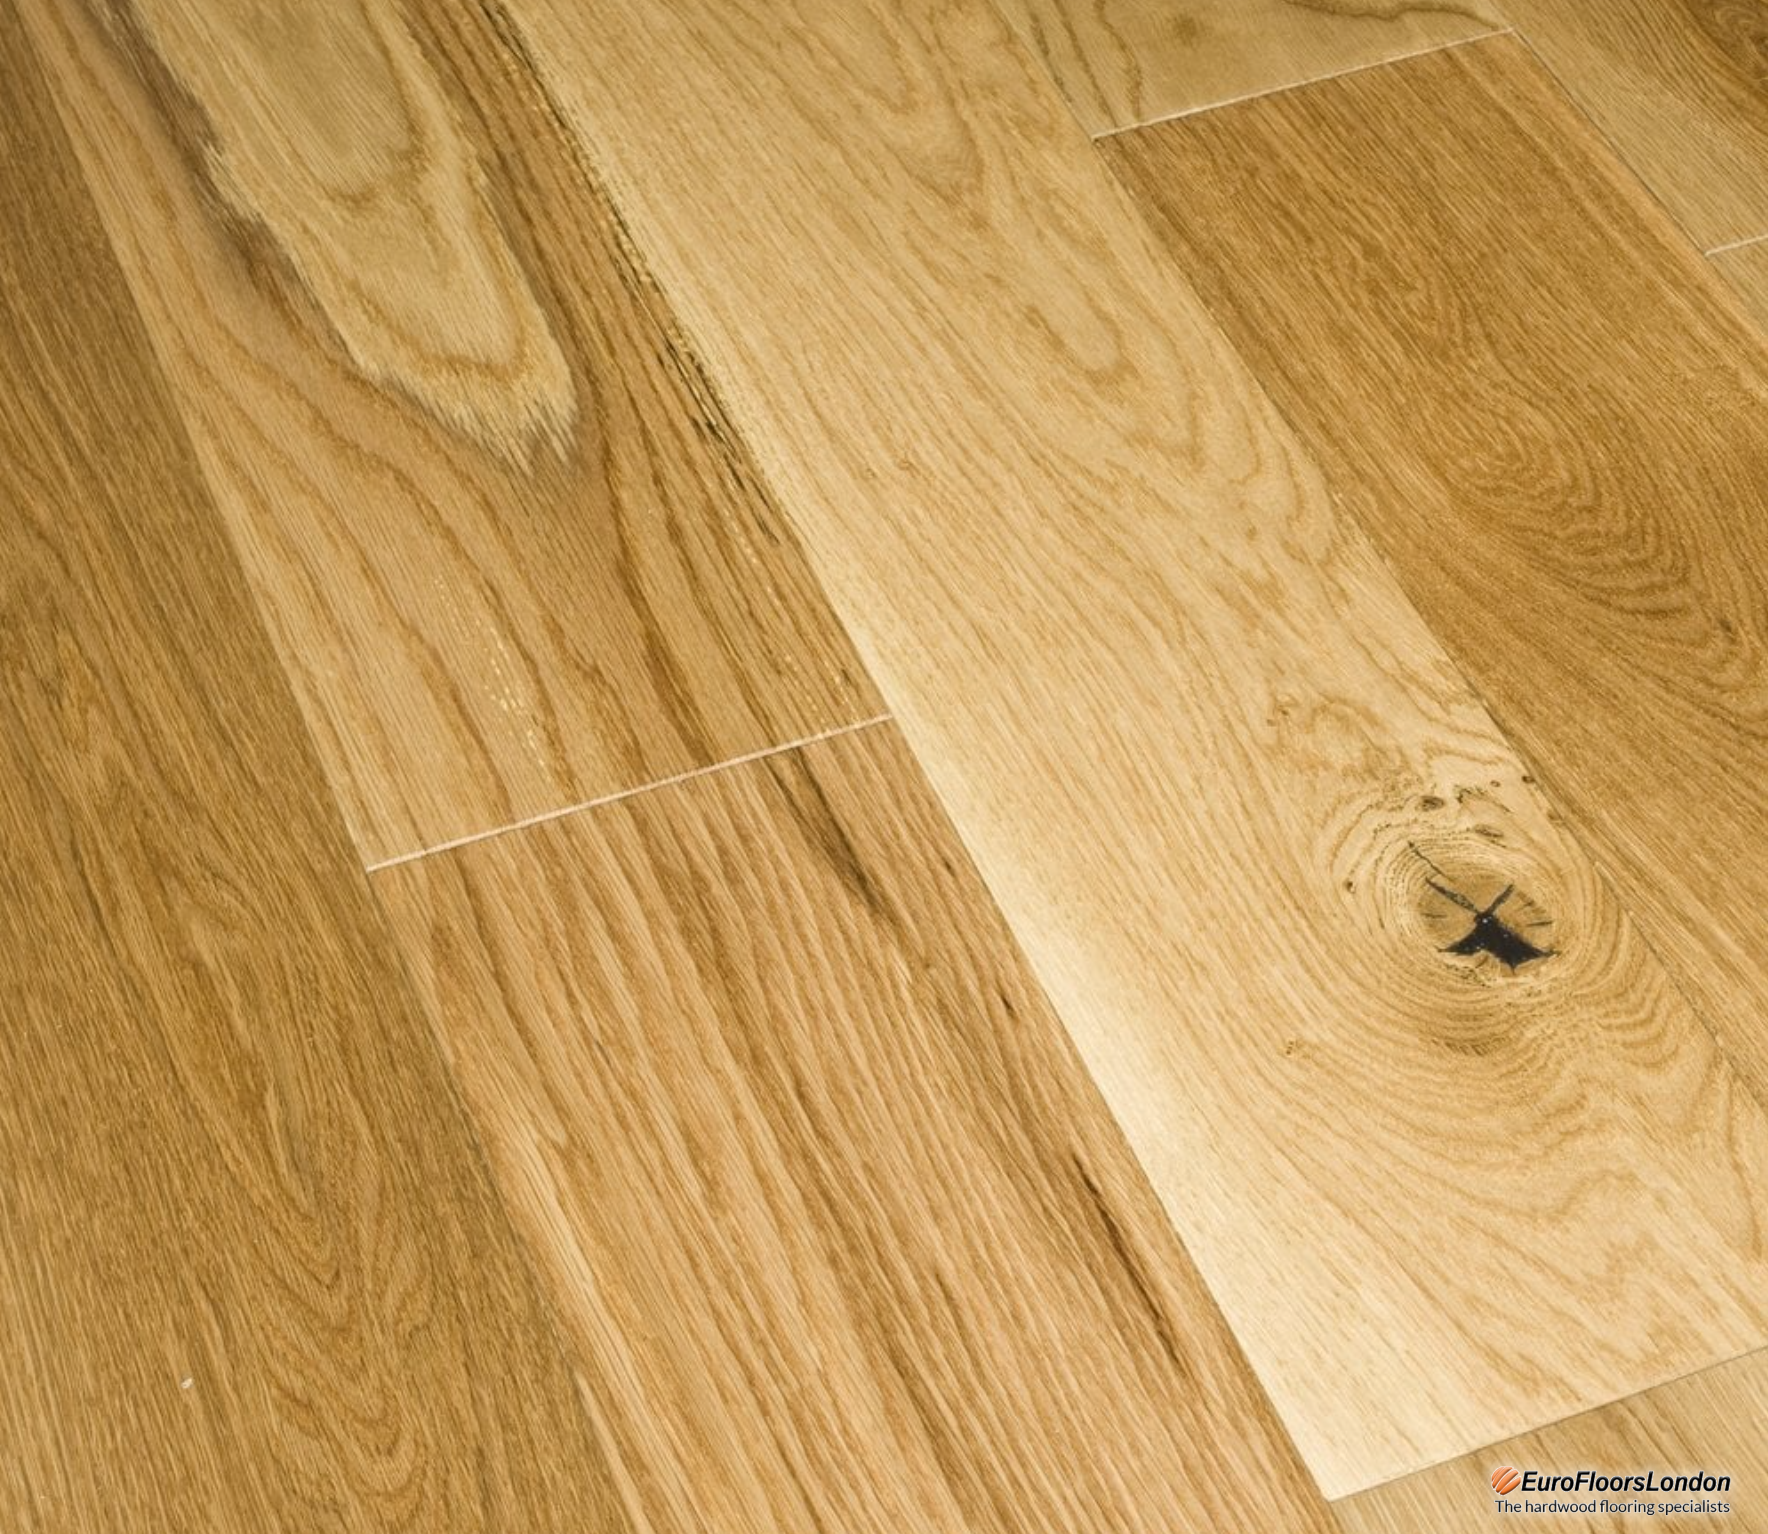 Engineered Wood Flooring – 14/3 x 150 x RL – Classic Grade – Brushed and Lacquered